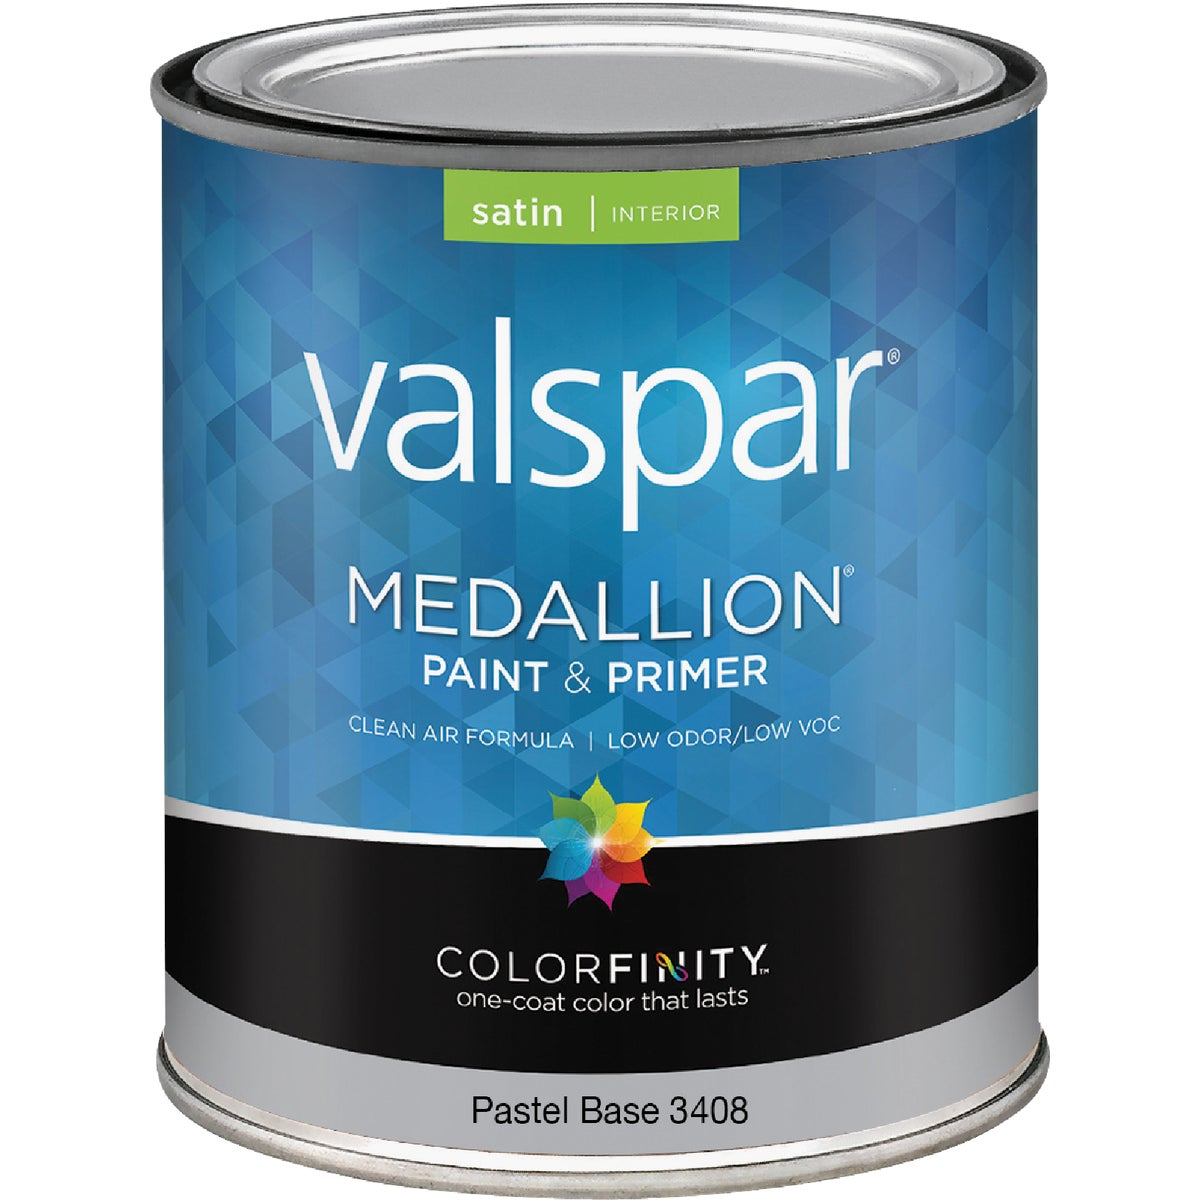 INT SAT PASTEL BS PAINT - 027.0003408.005 by Valspar Corp